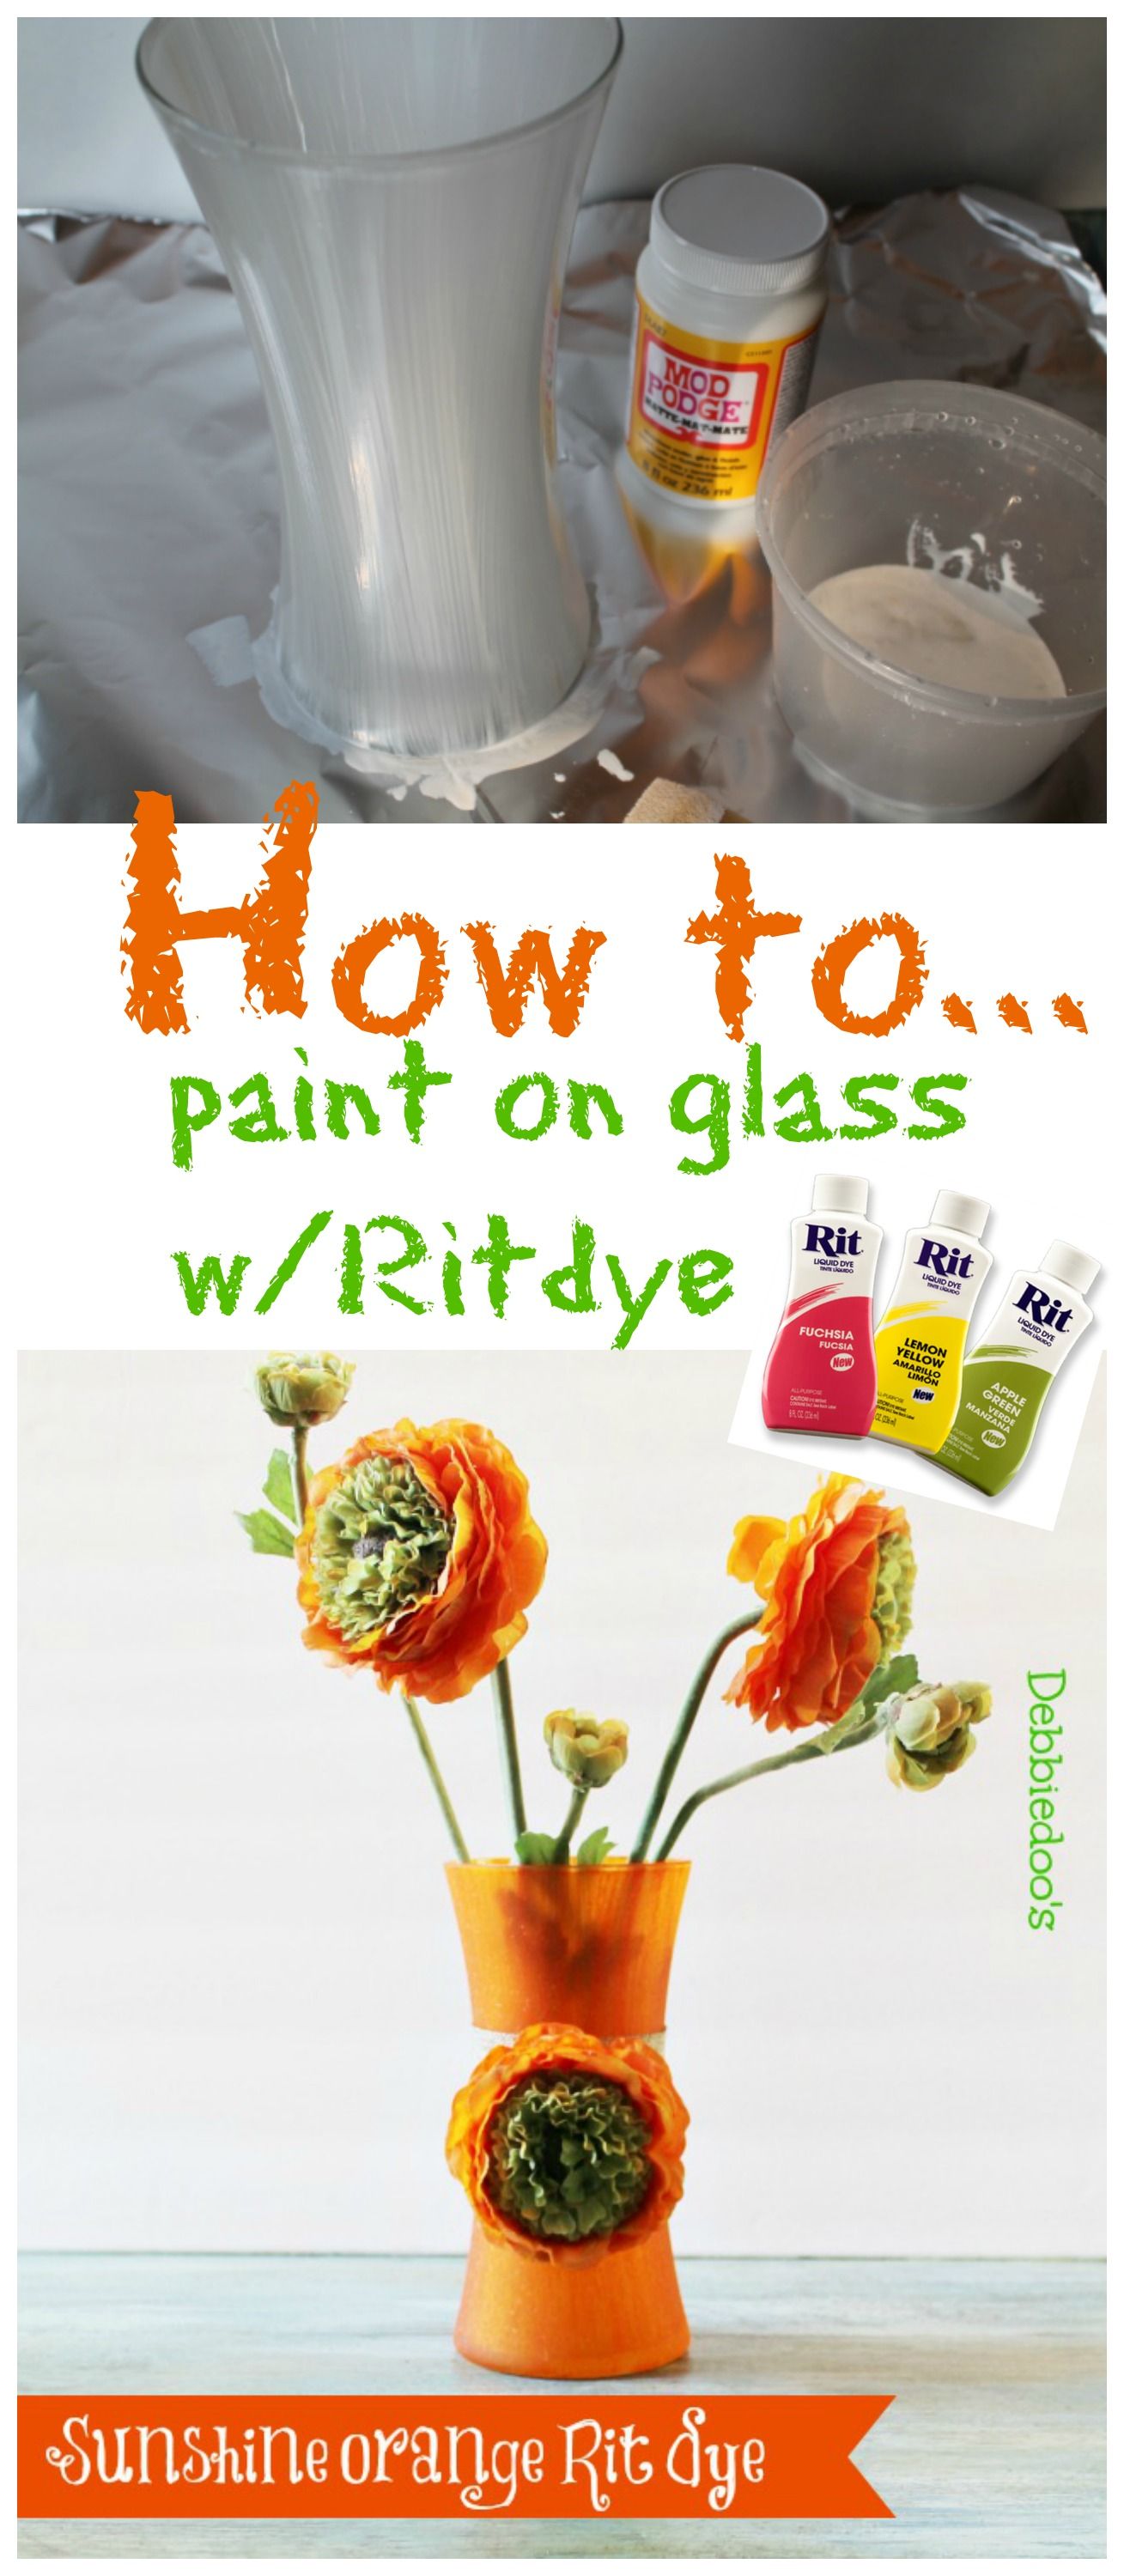 How-to-paint-on-glass-with-rit-dye Painting a vase with sunshine orange Rit dye